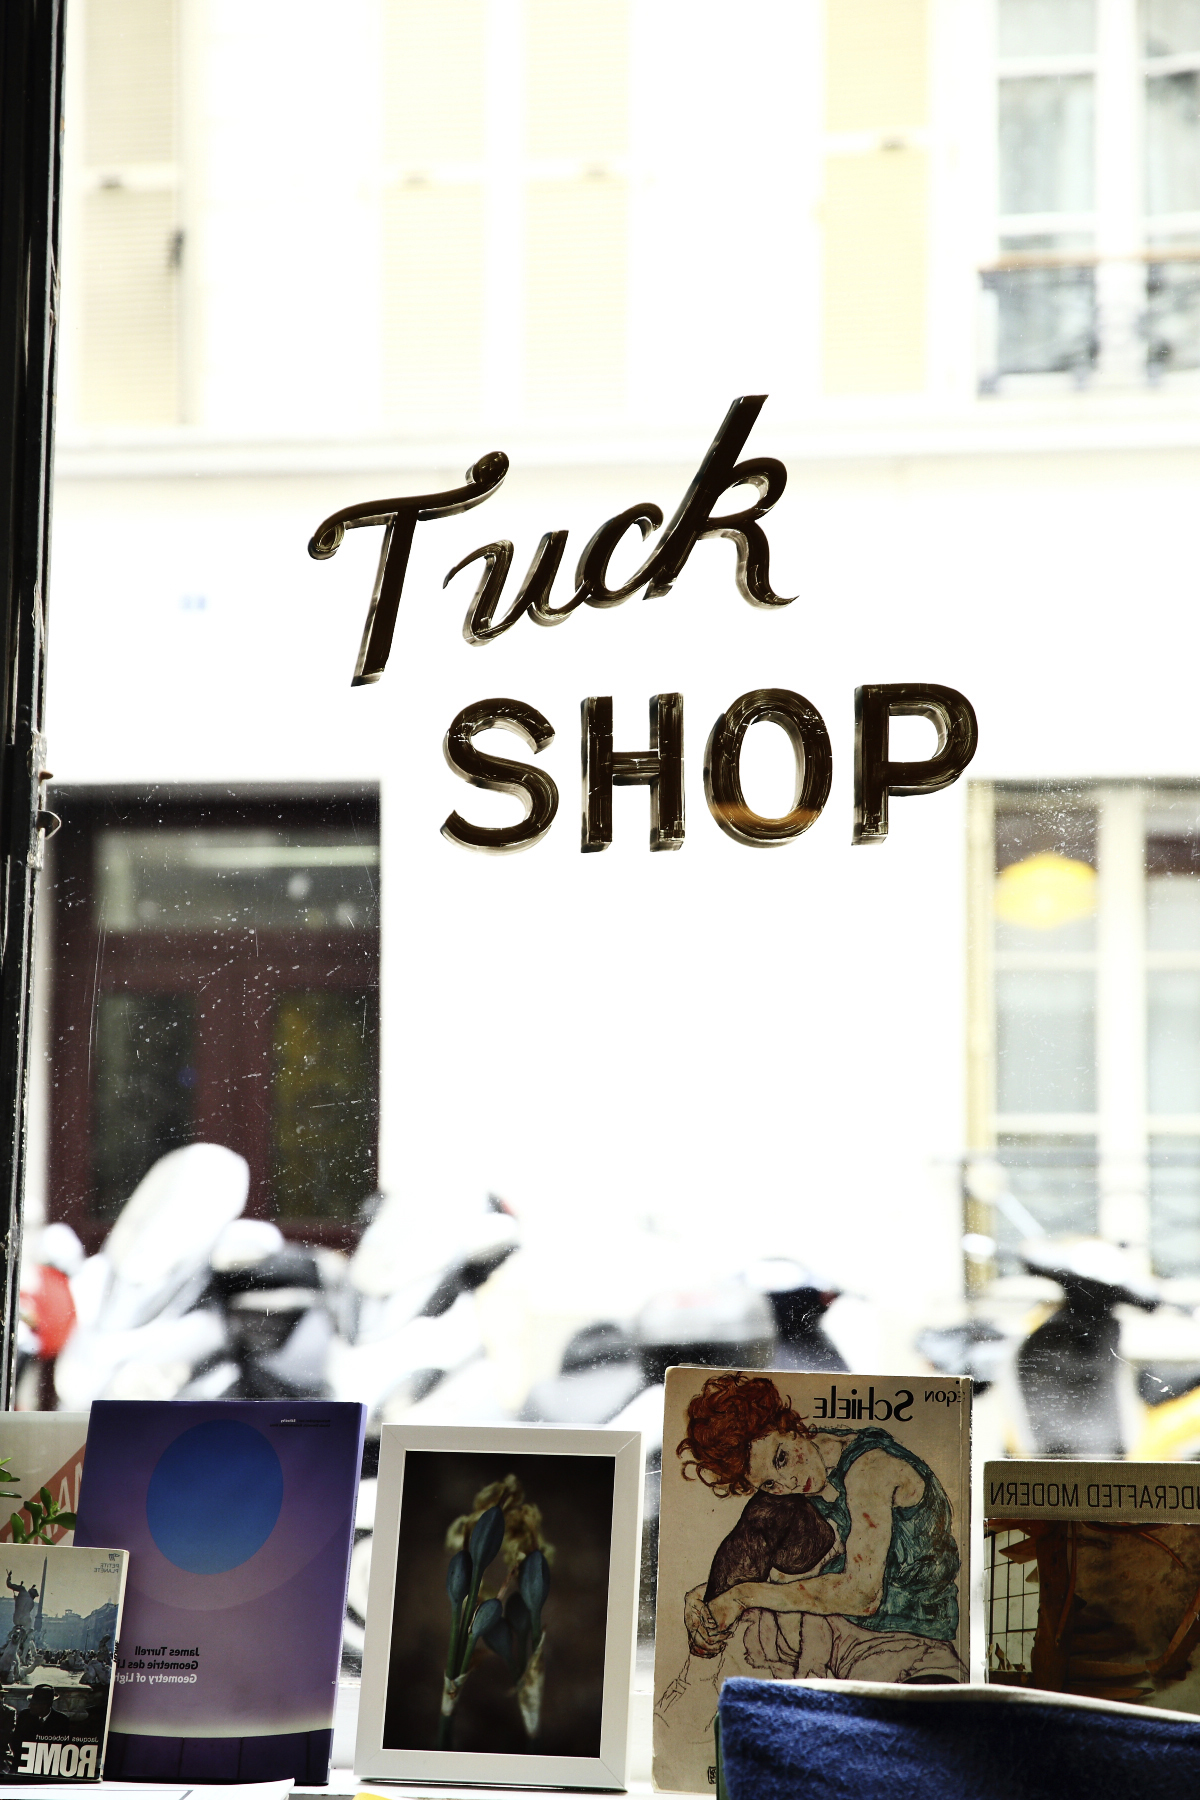 The Tuck Shop - Australian Coffee Shop in Paris